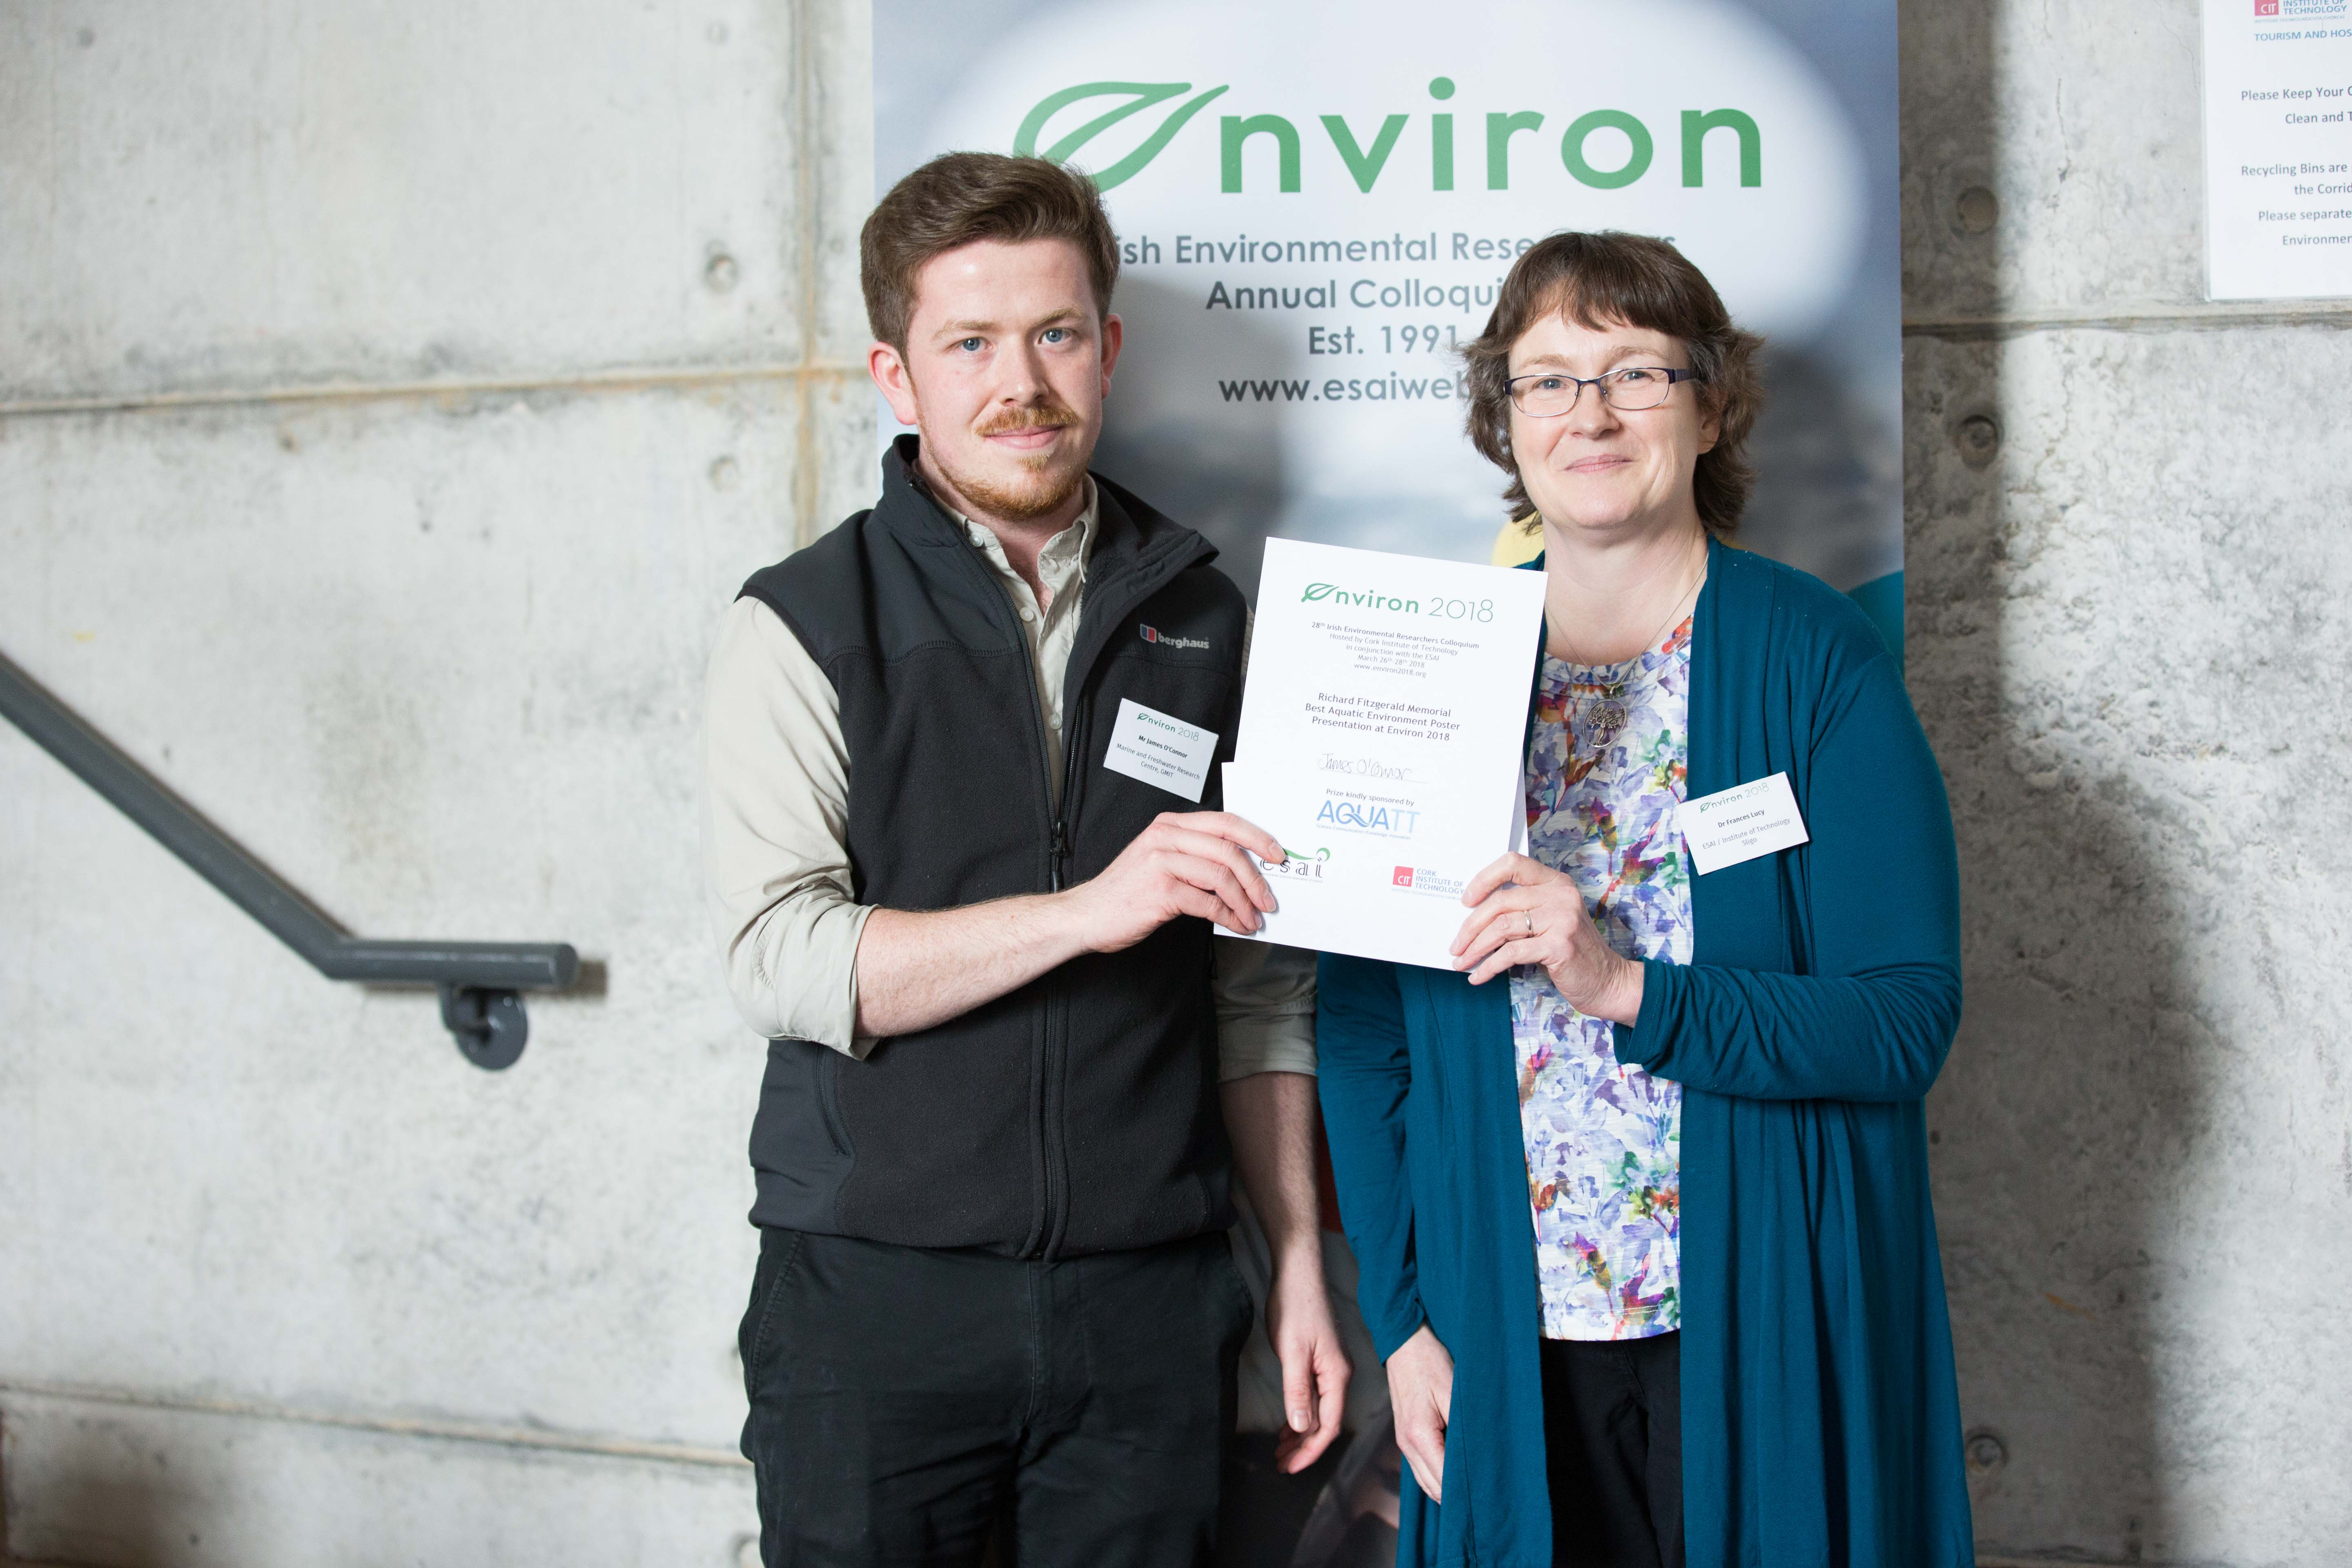 Richard Fitzgerald Best Aquatic Env Poster Environ 2018 James O Connor GMIT receives his award from ESAI Chair Prof Frances Lucy